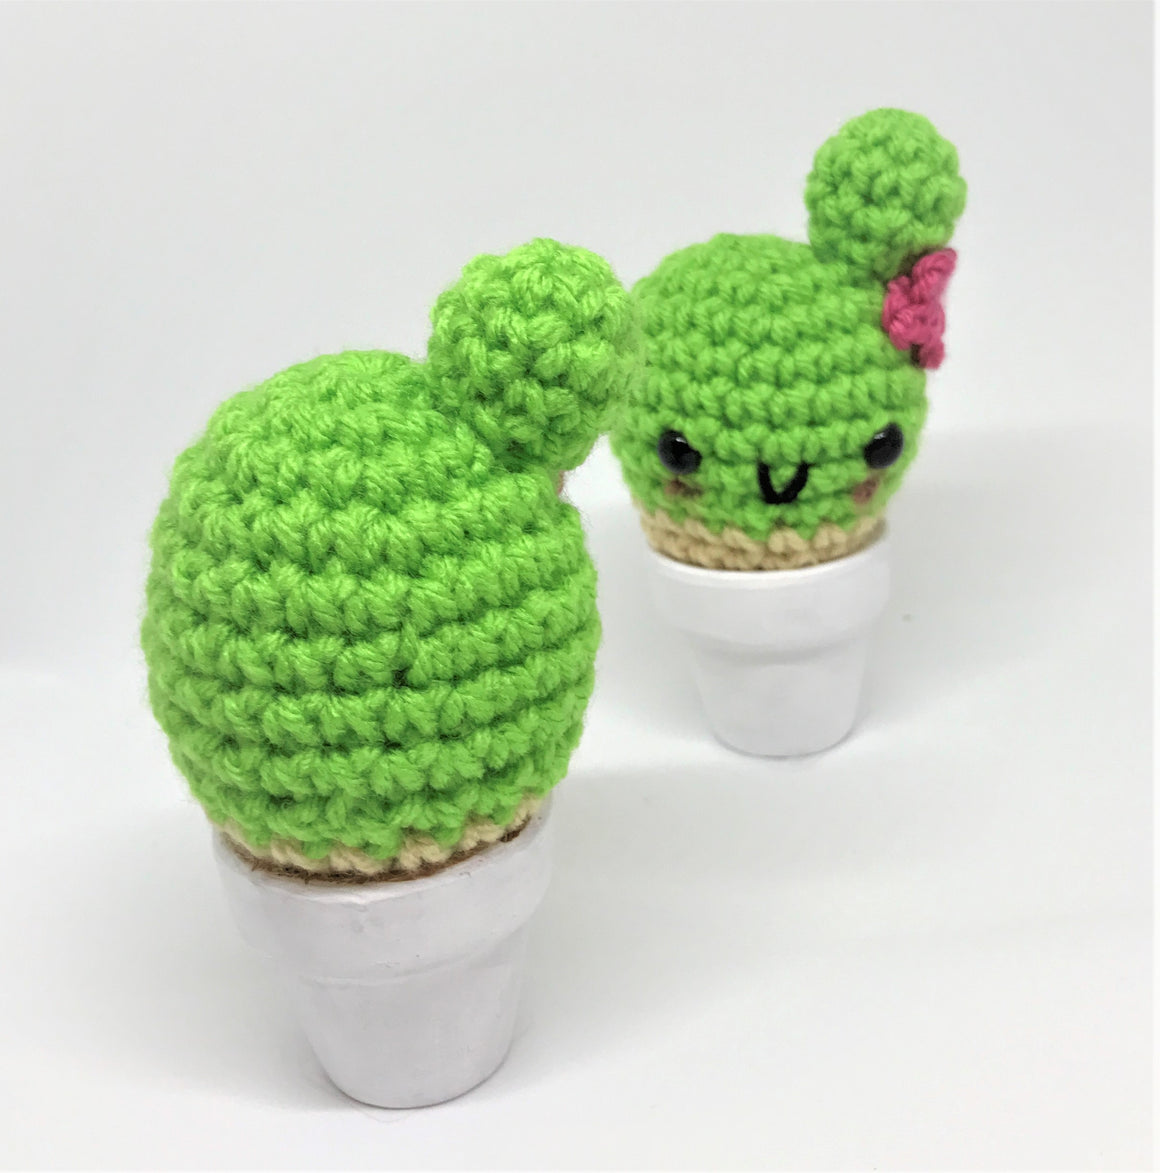 Hand made Knit Kawaii Cactus by Crafty Dork